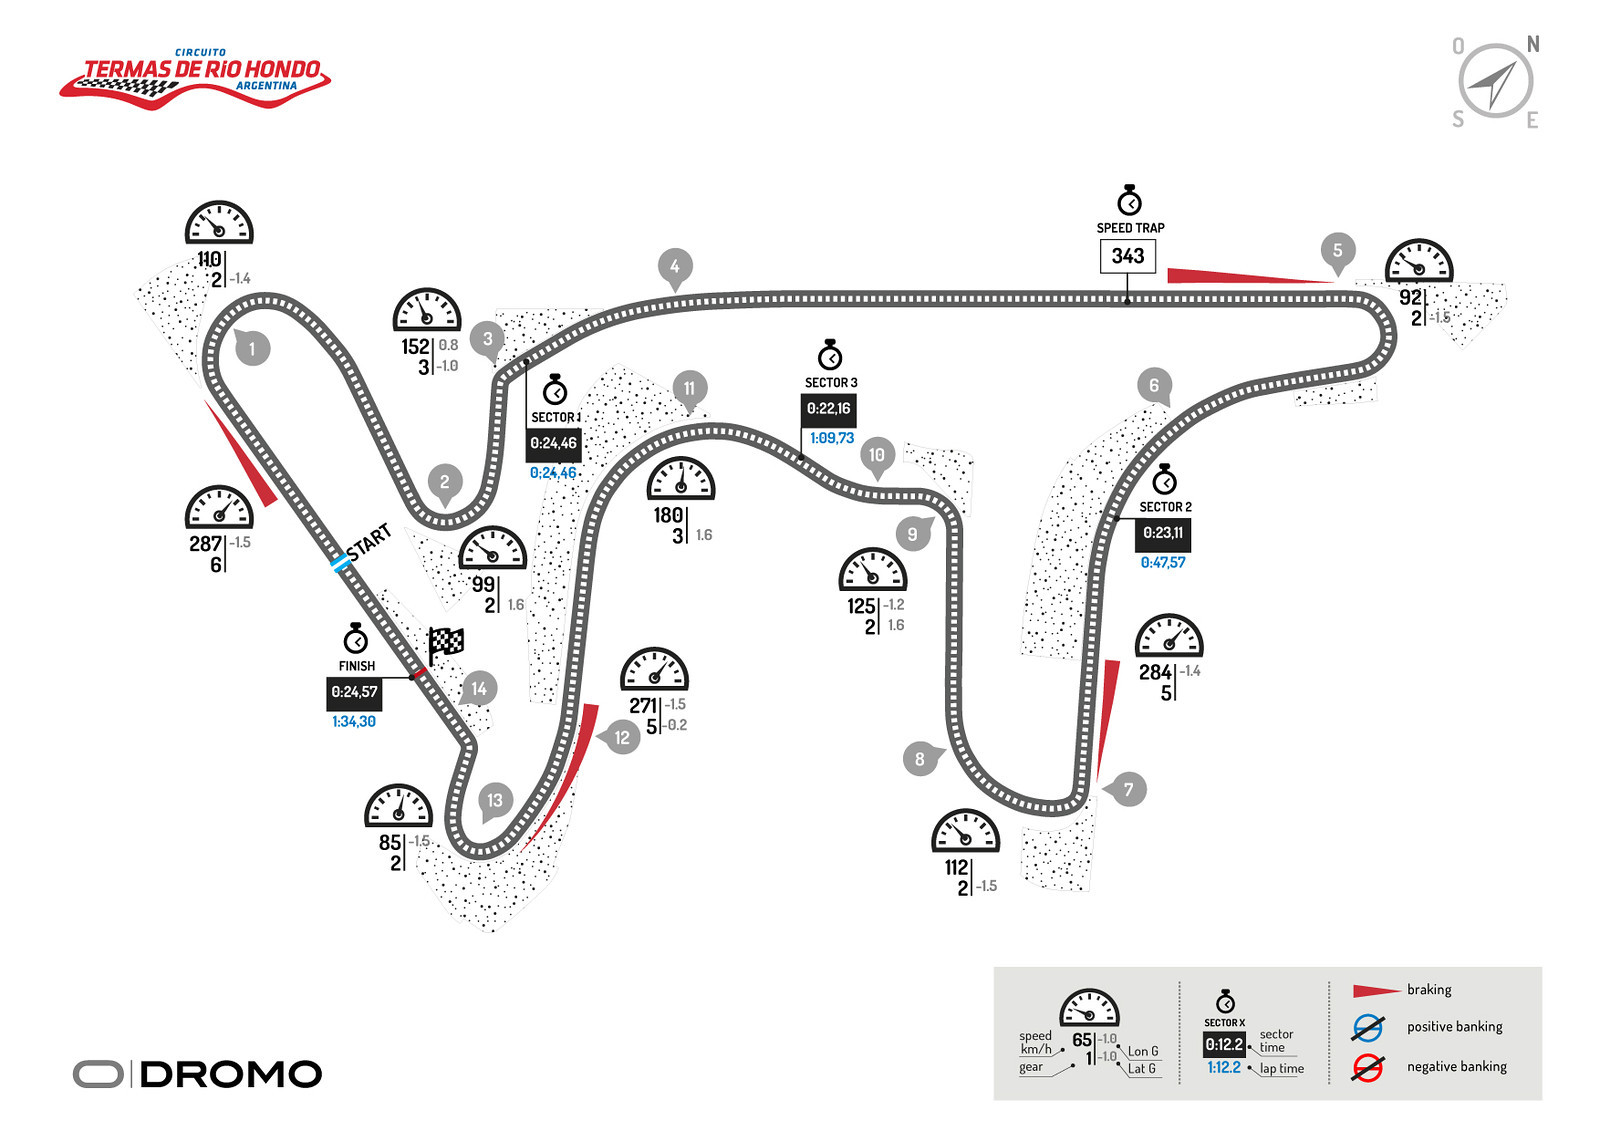 Circuito Qatar : Motogp preview of the argentina gp asphalt & rubber